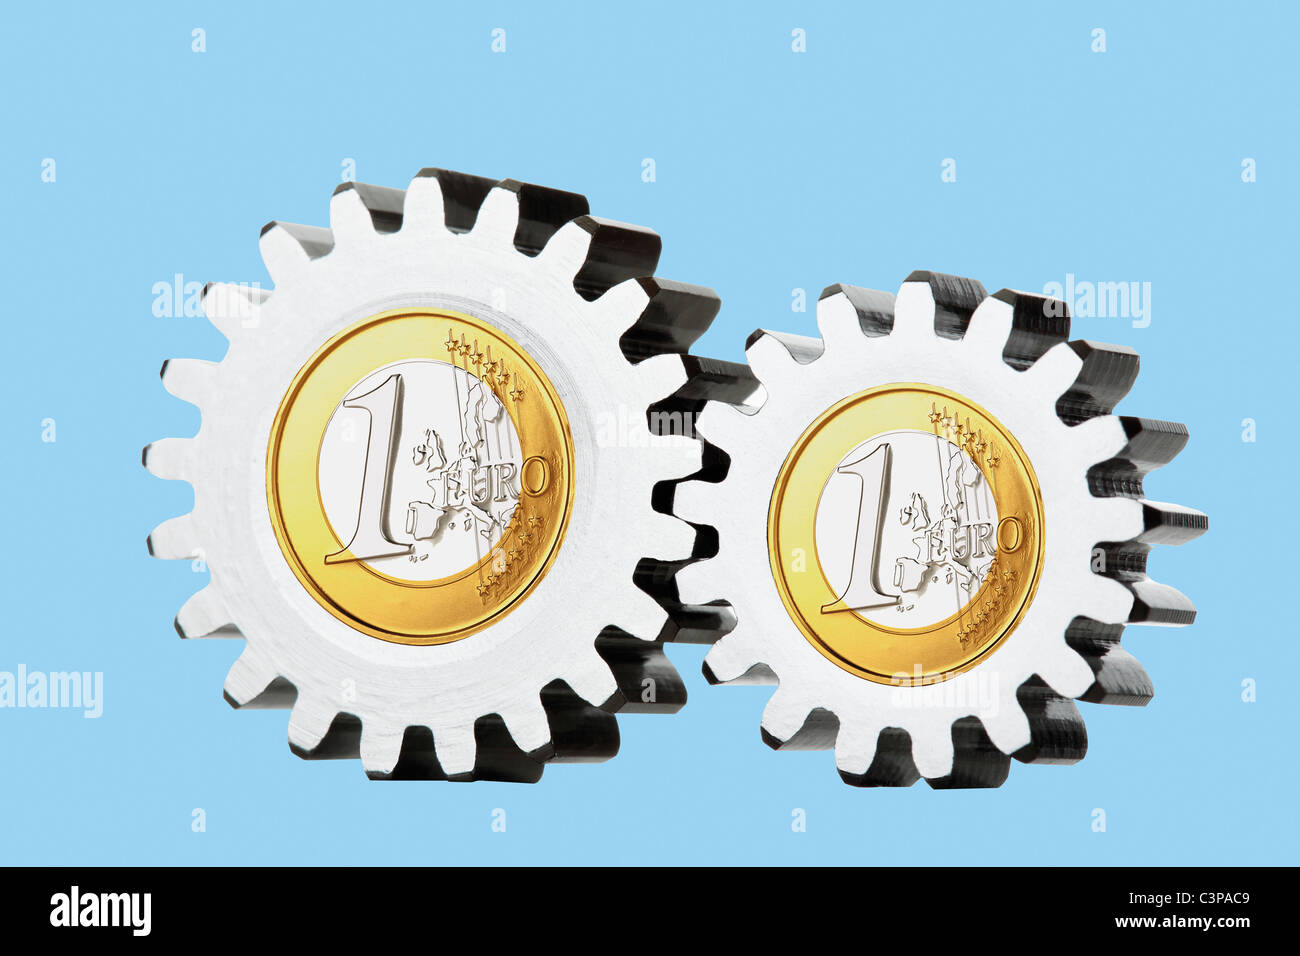 1 euro coins with cogwheels, close up - Stock Image